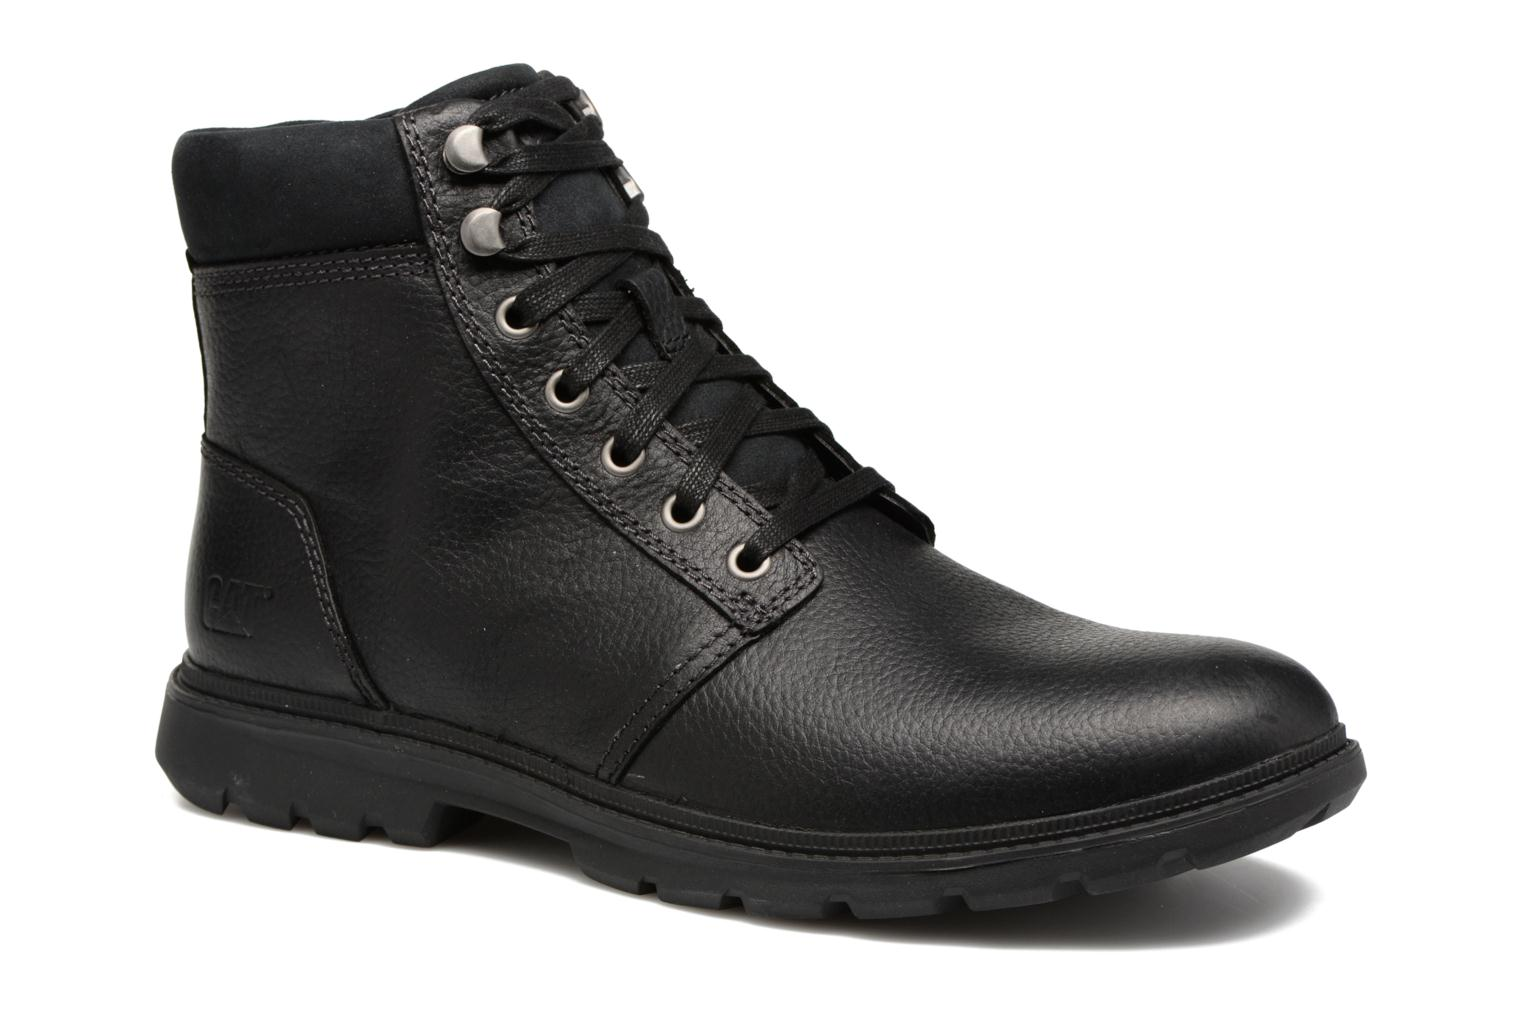 Marques Chaussure homme Caterpillar homme Nyles Pack Black